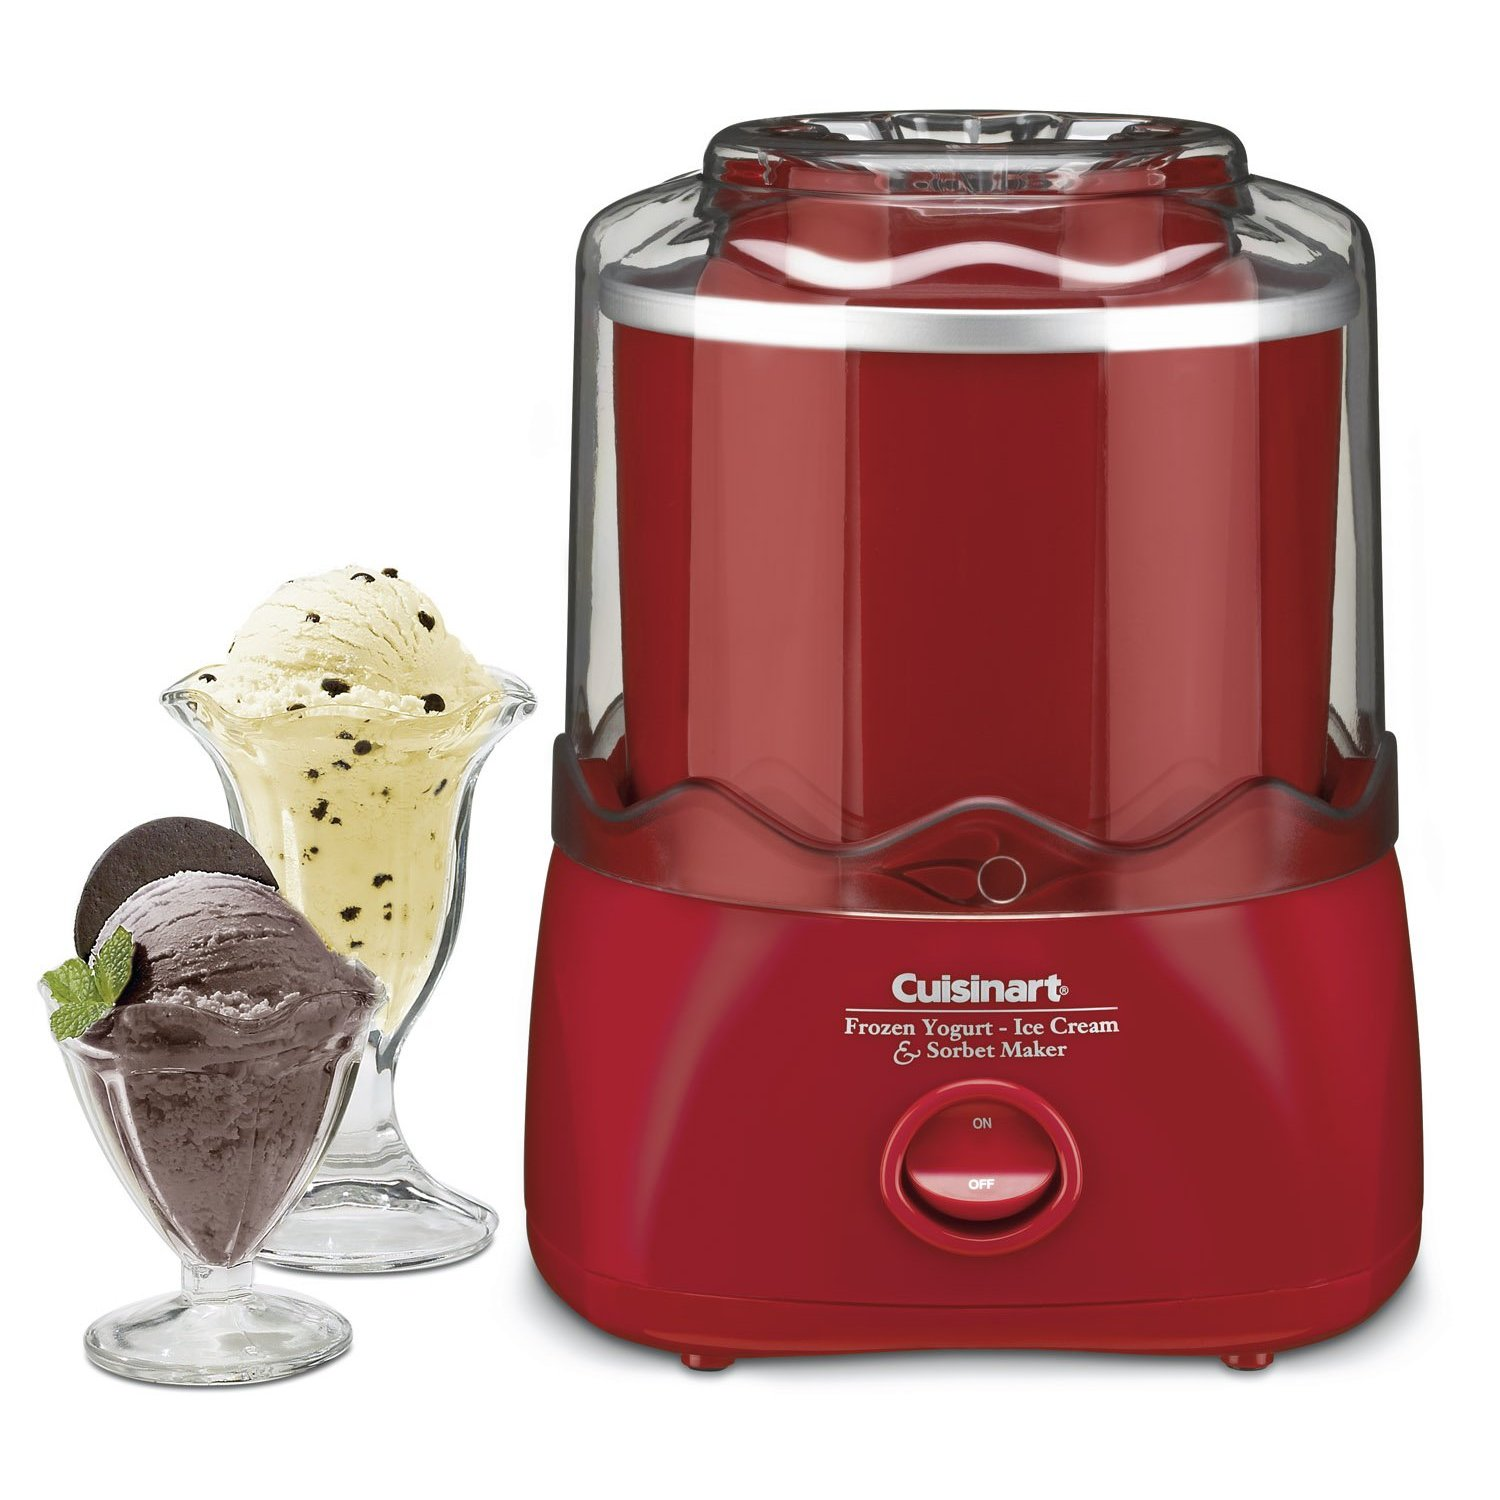 Kitchenaid icecream maker photo - 1